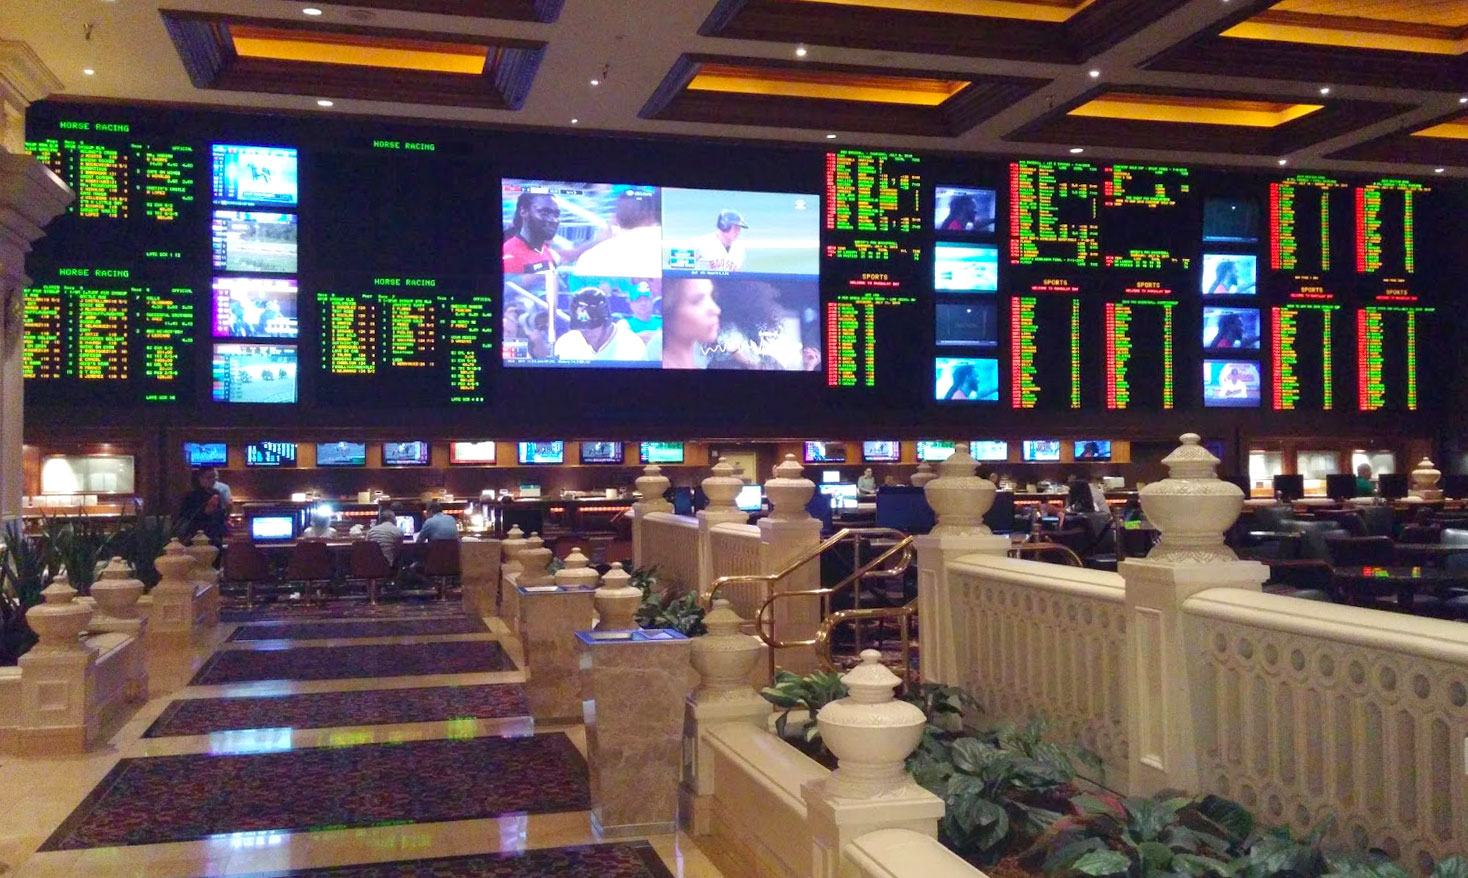 sports betting apps mandalay bay sportsbook